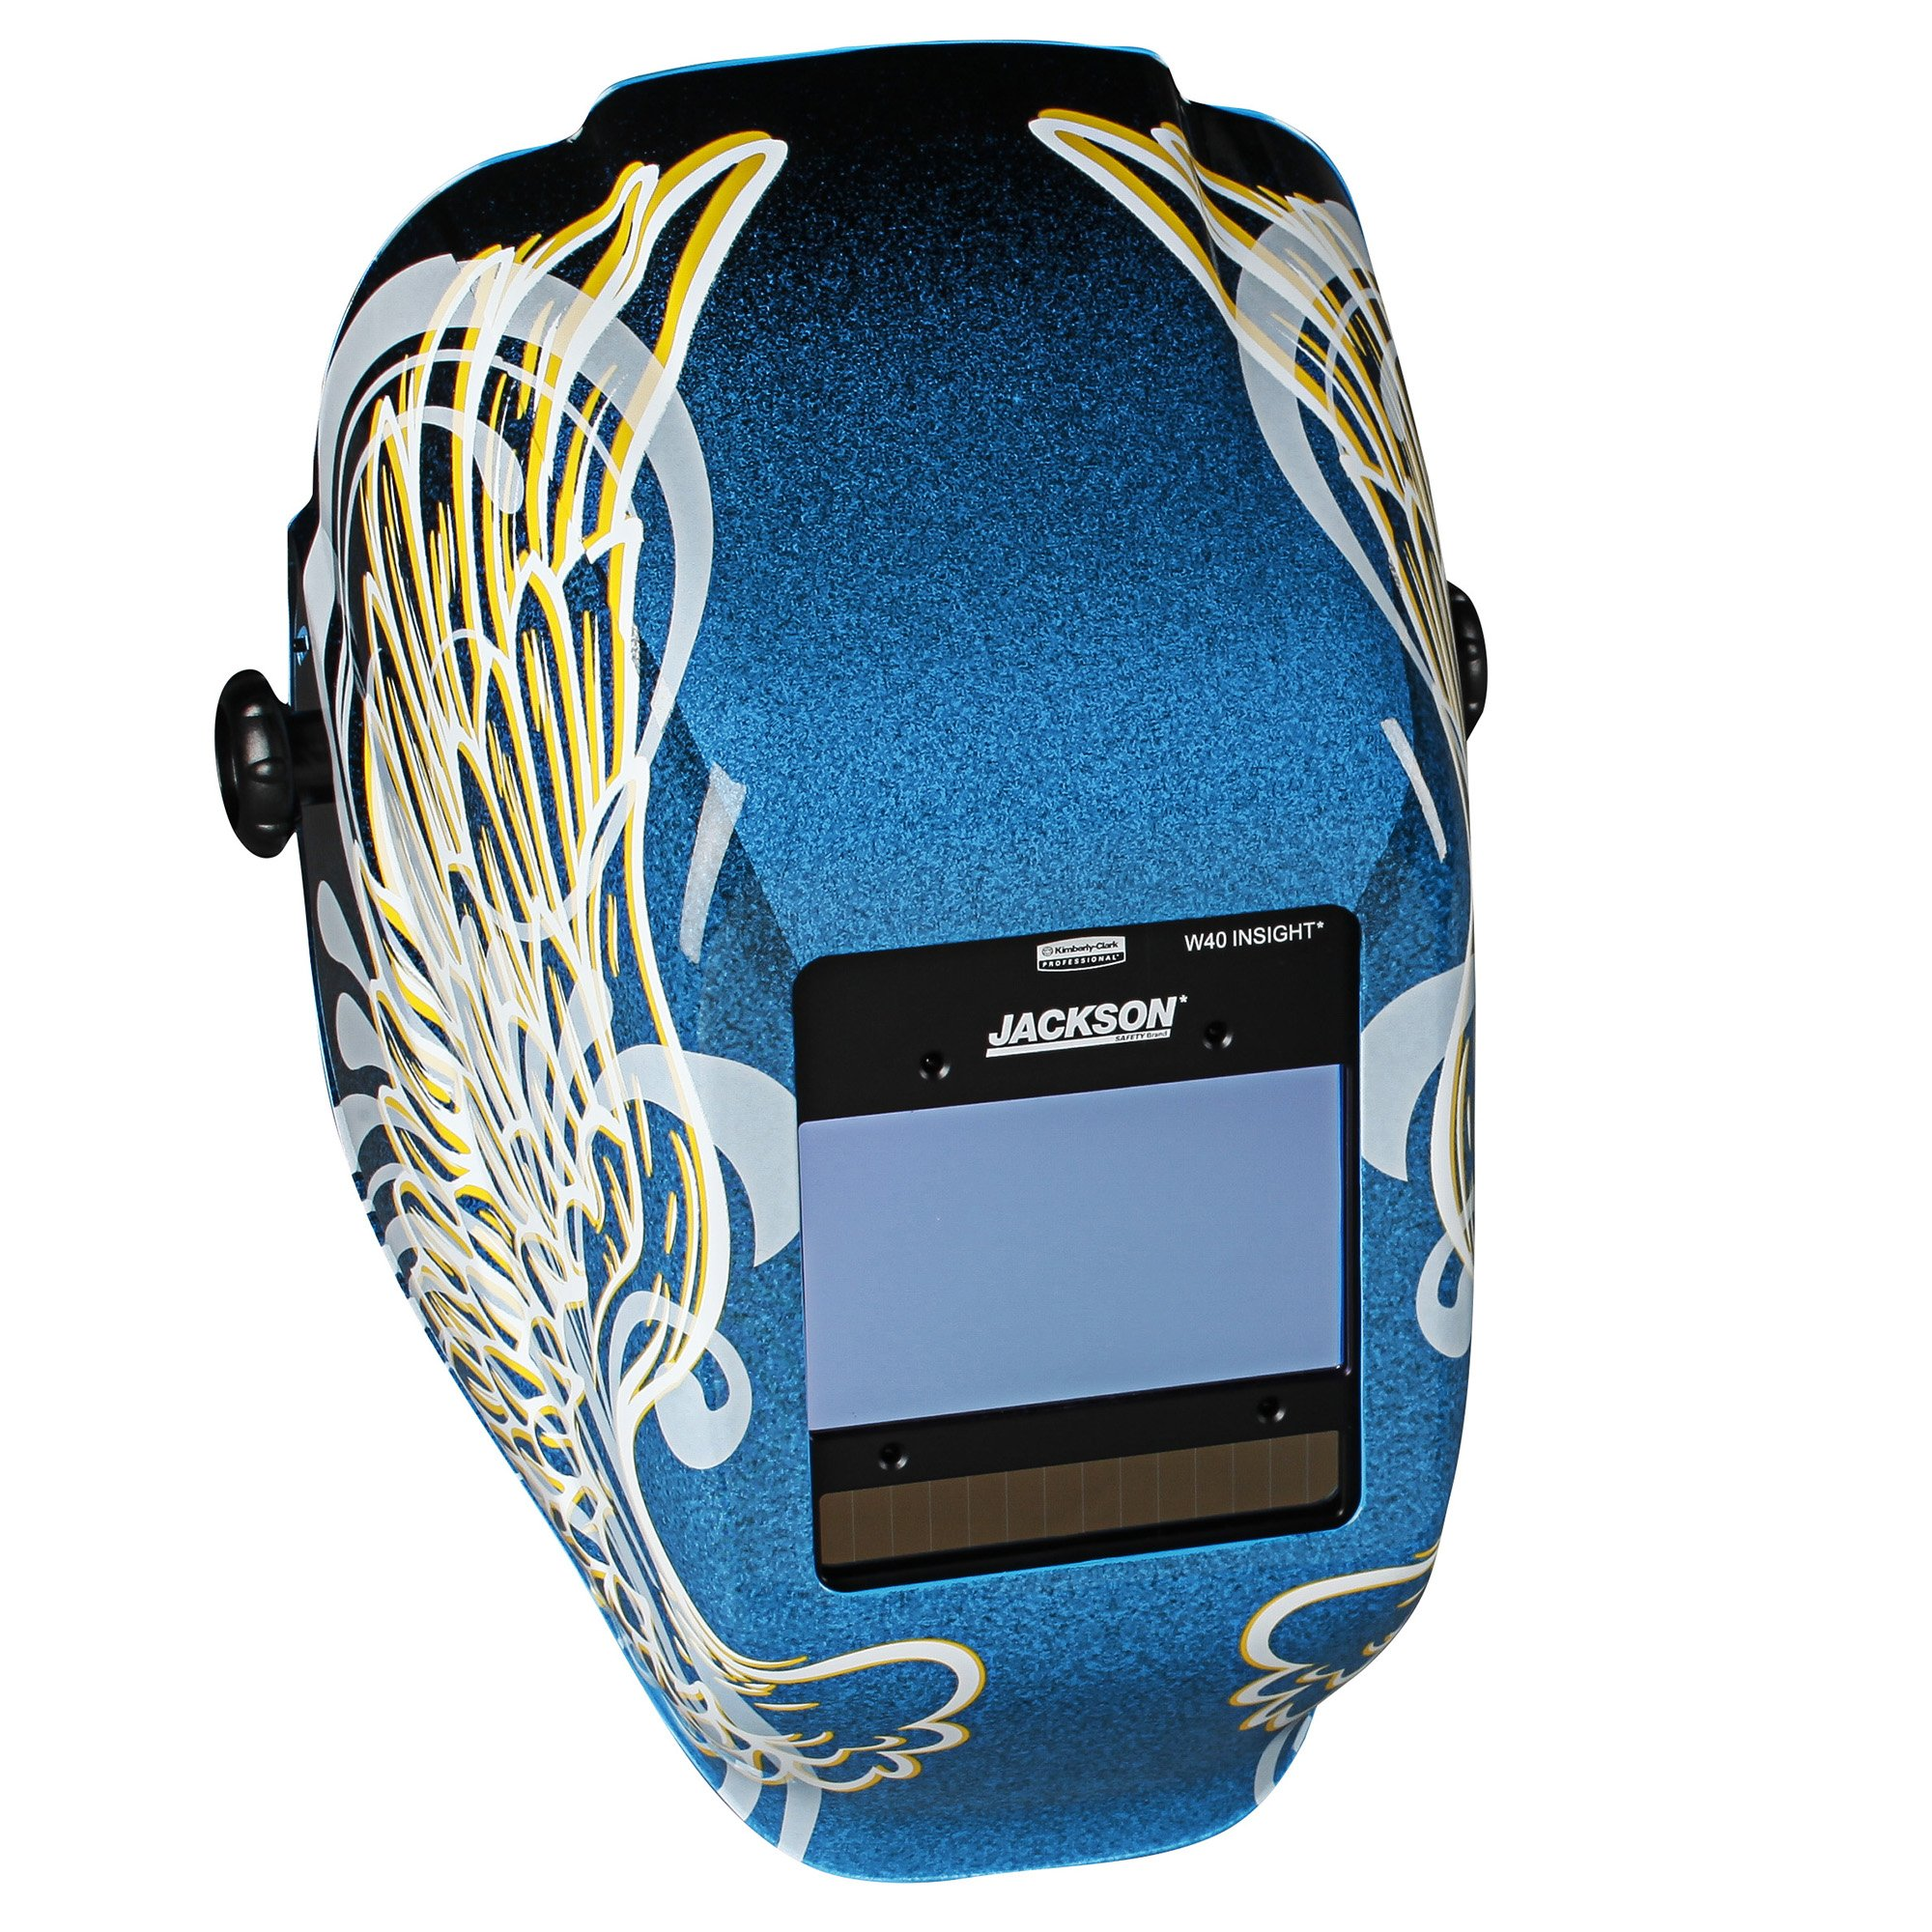 Jackson Safety Insight Variable Auto Darkening Welding Helmet (46100), HaloX , ADF, Gold Wings Graphic